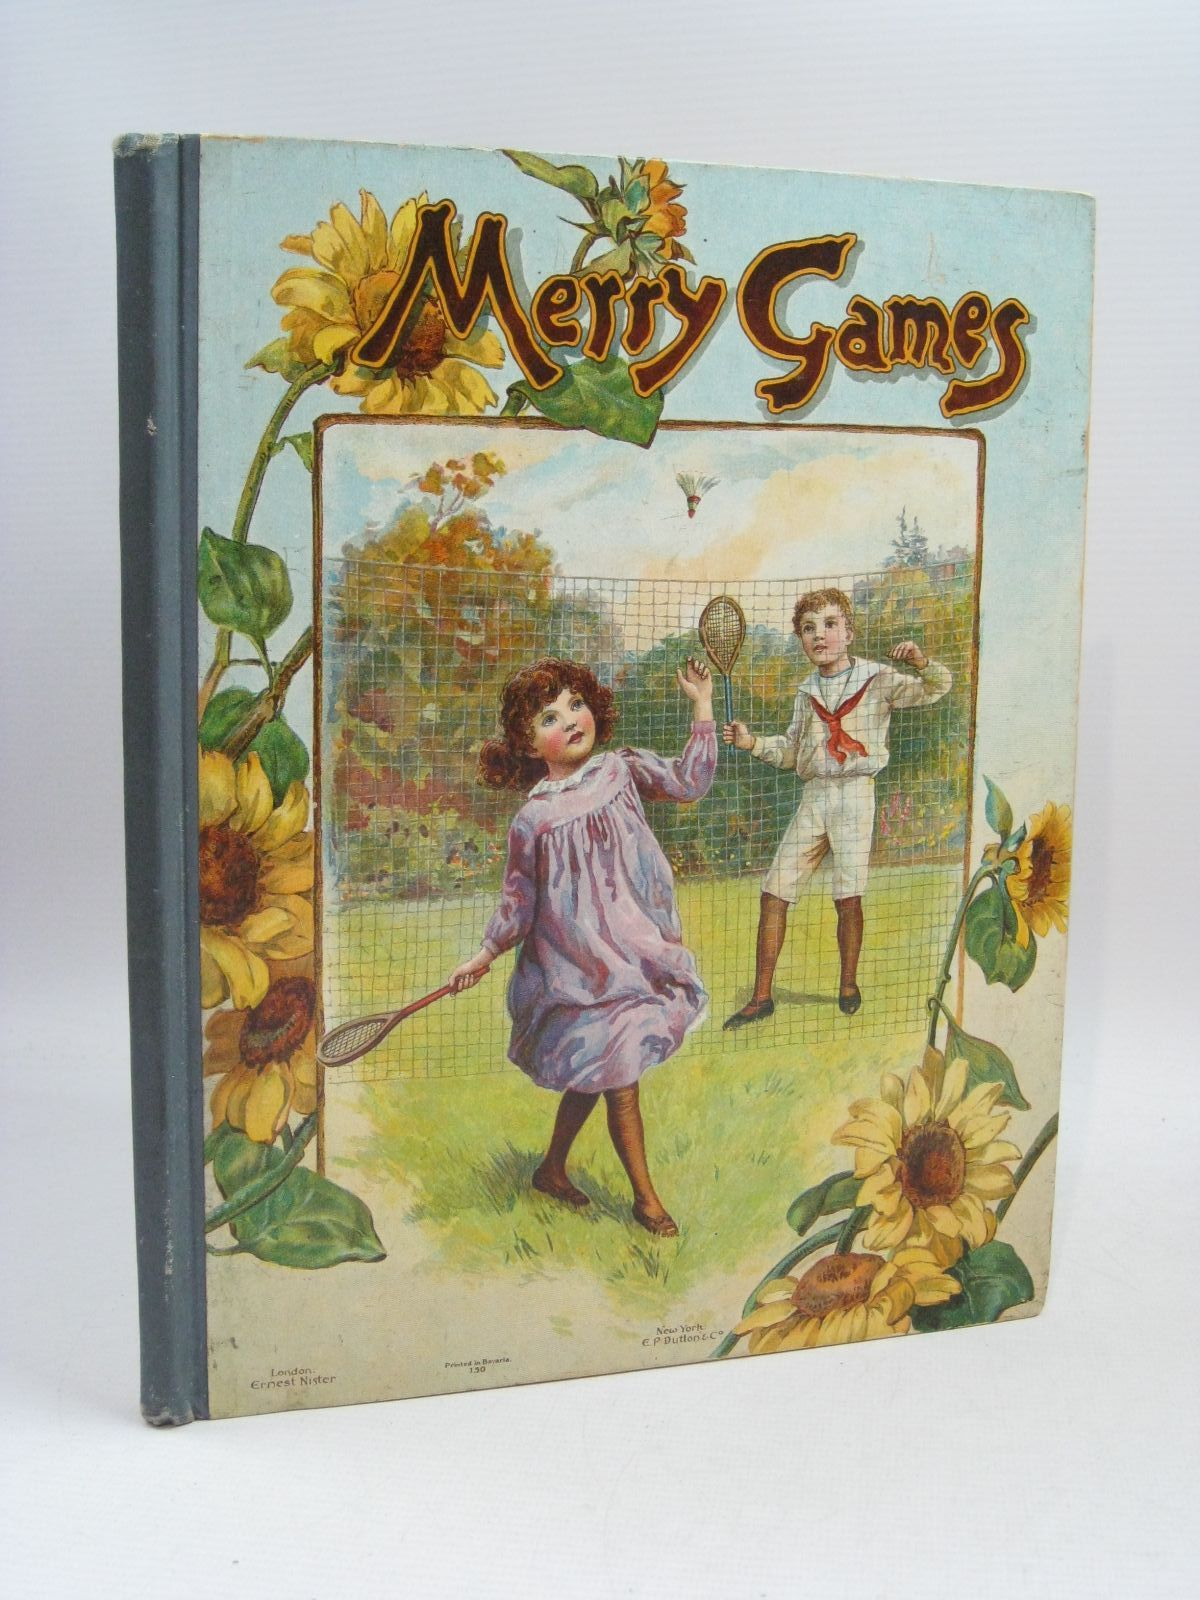 Photo of MERRY GAMES published by Ernest Nister, E.P. Dutton & Co. (STOCK CODE: 1315271)  for sale by Stella & Rose's Books